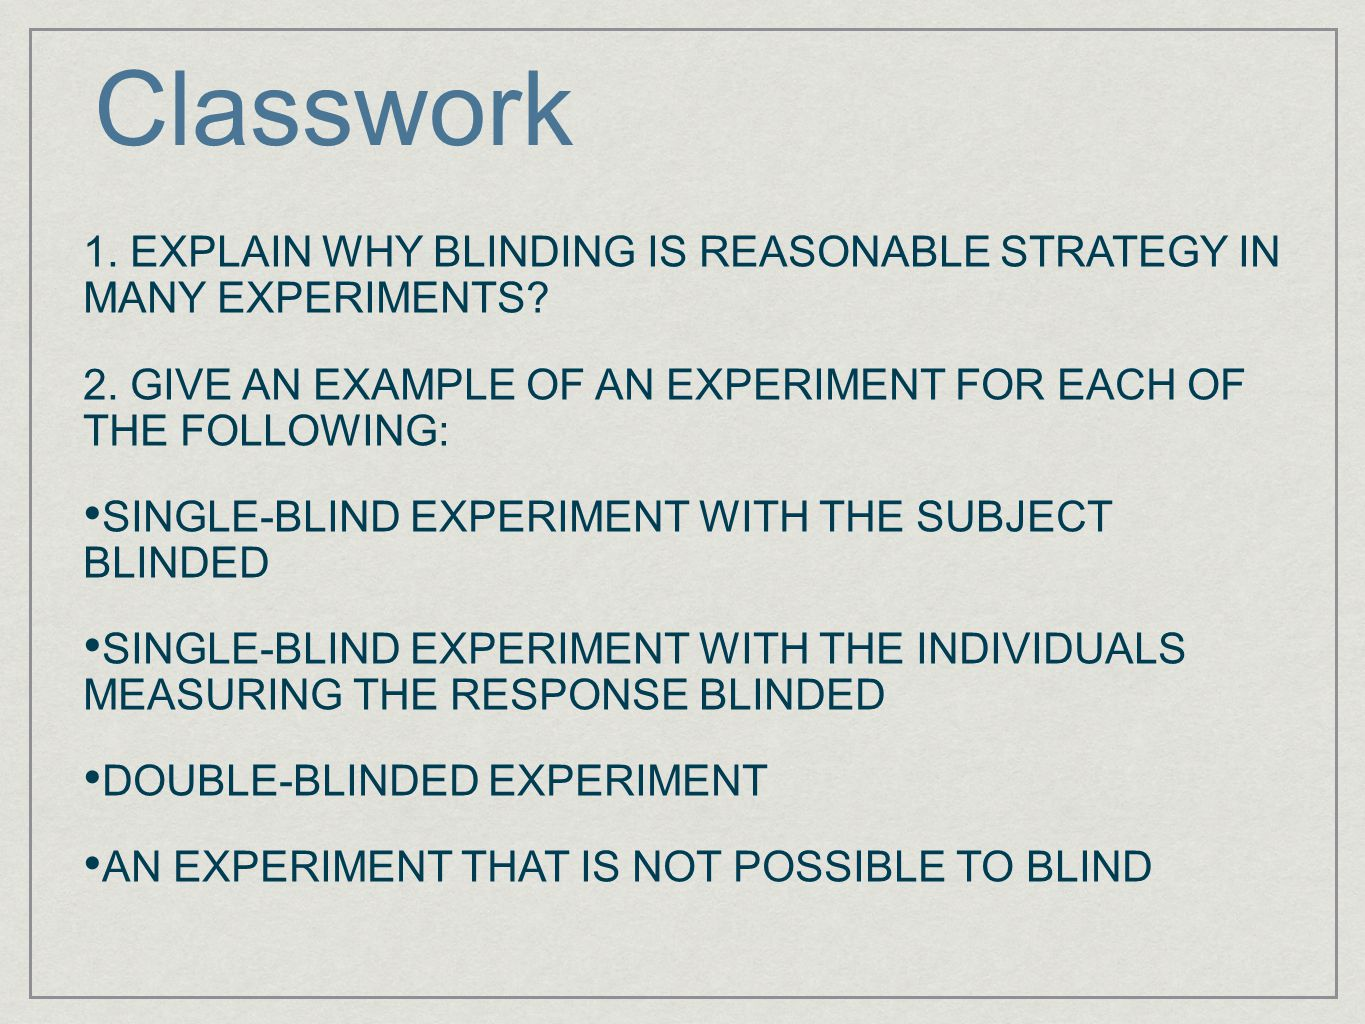 Classwork 1. EXPLAIN WHY BLINDING IS REASONABLE STRATEGY IN MANY EXPERIMENTS 2. GIVE AN EXAMPLE OF AN EXPERIMENT FOR EACH OF THE FOLLOWING: